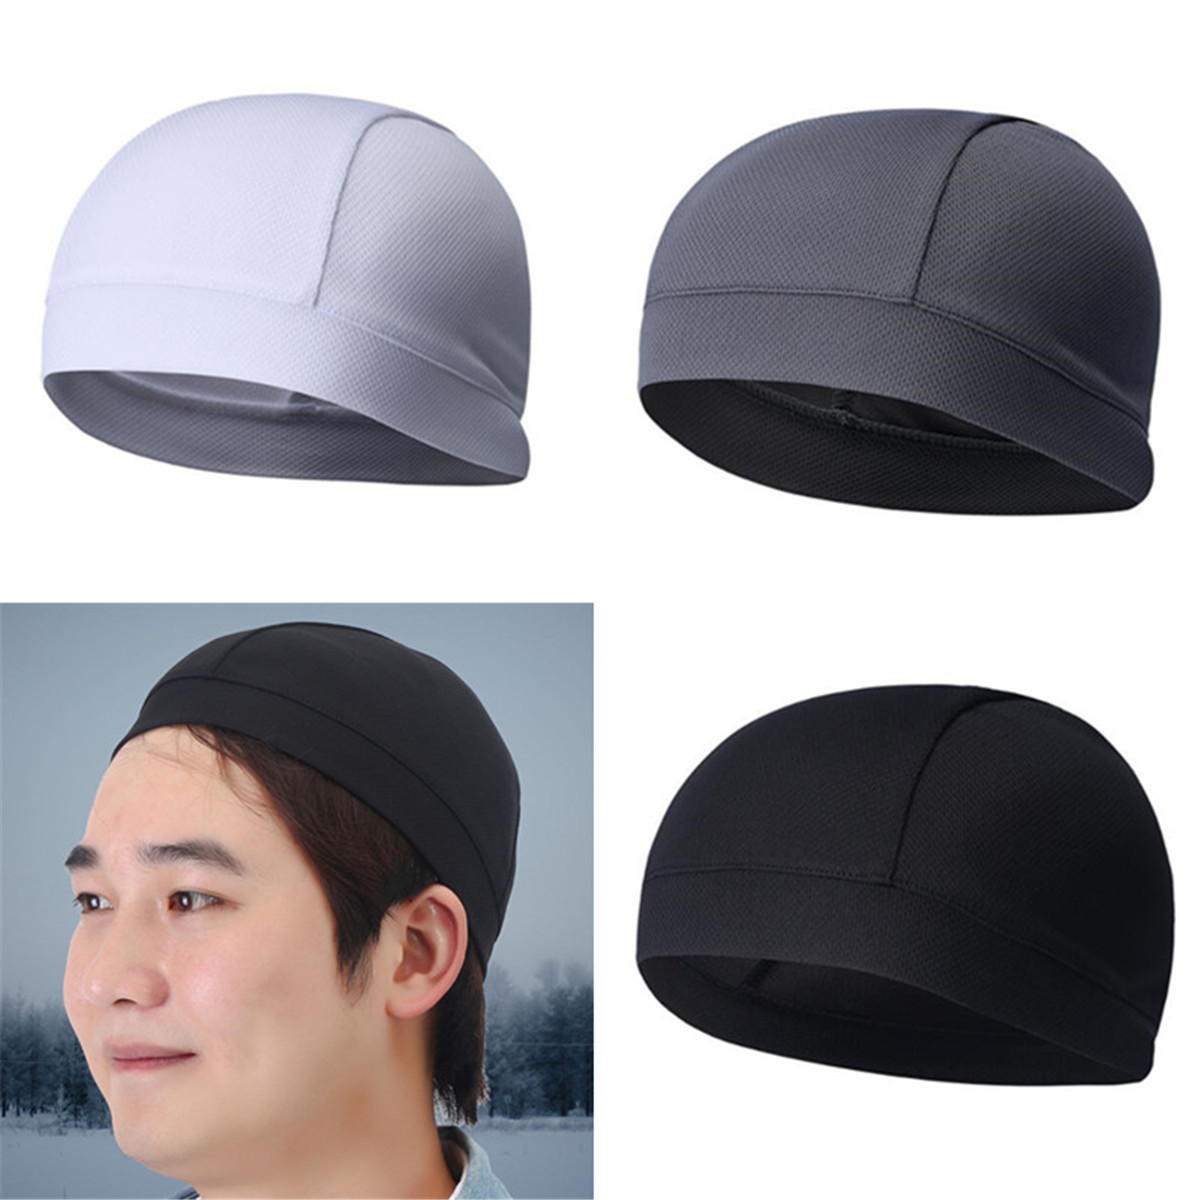 317c32f61 Details about 1pc Skull Cap Under Helmet Liner Beanies Bandana For Cycling  Motorcycle Running